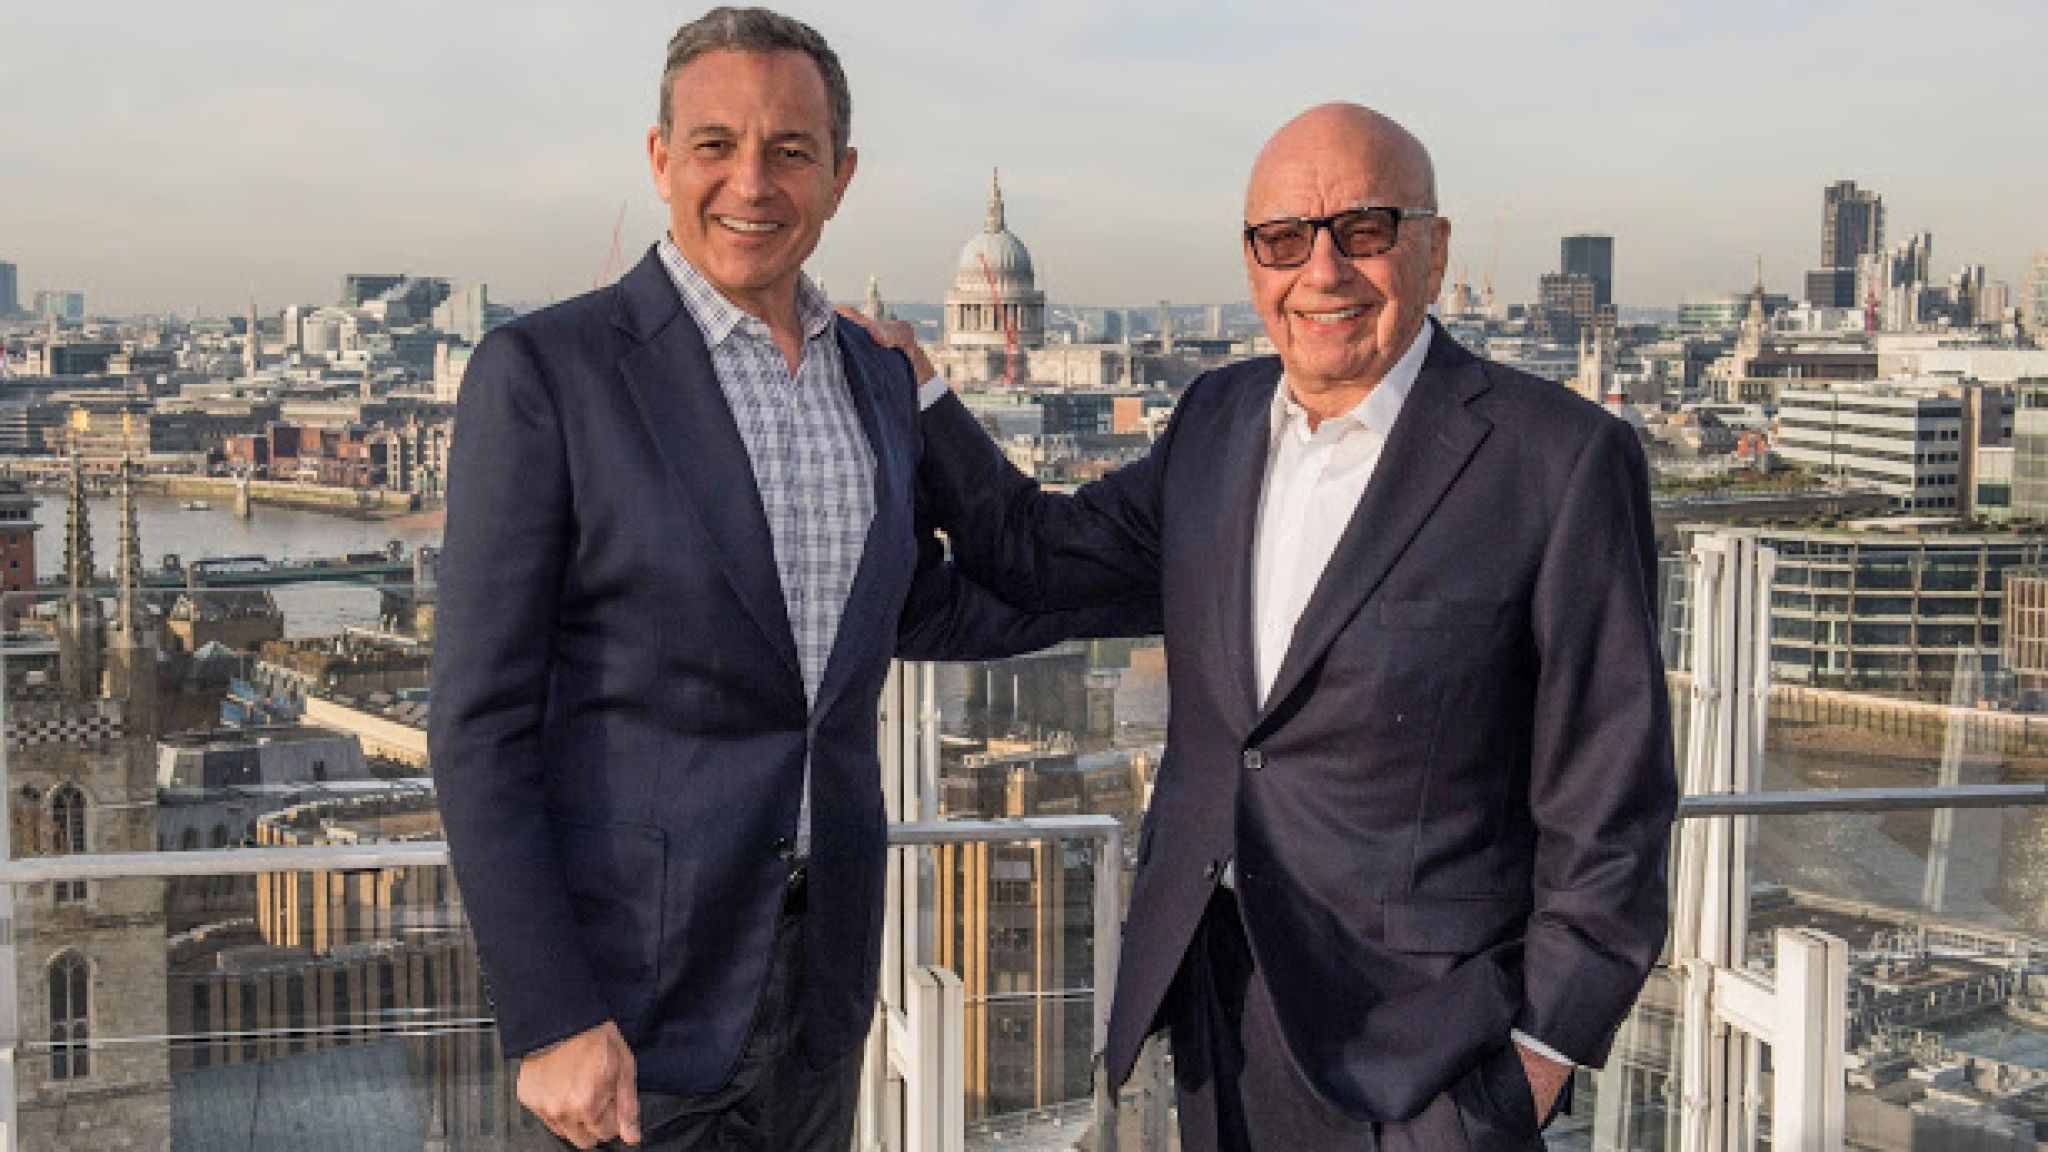 Bob Iger and Rupert Murdoch are pictured together after agreeing terms of the Fox asset sale to Disney. Pic: Disney